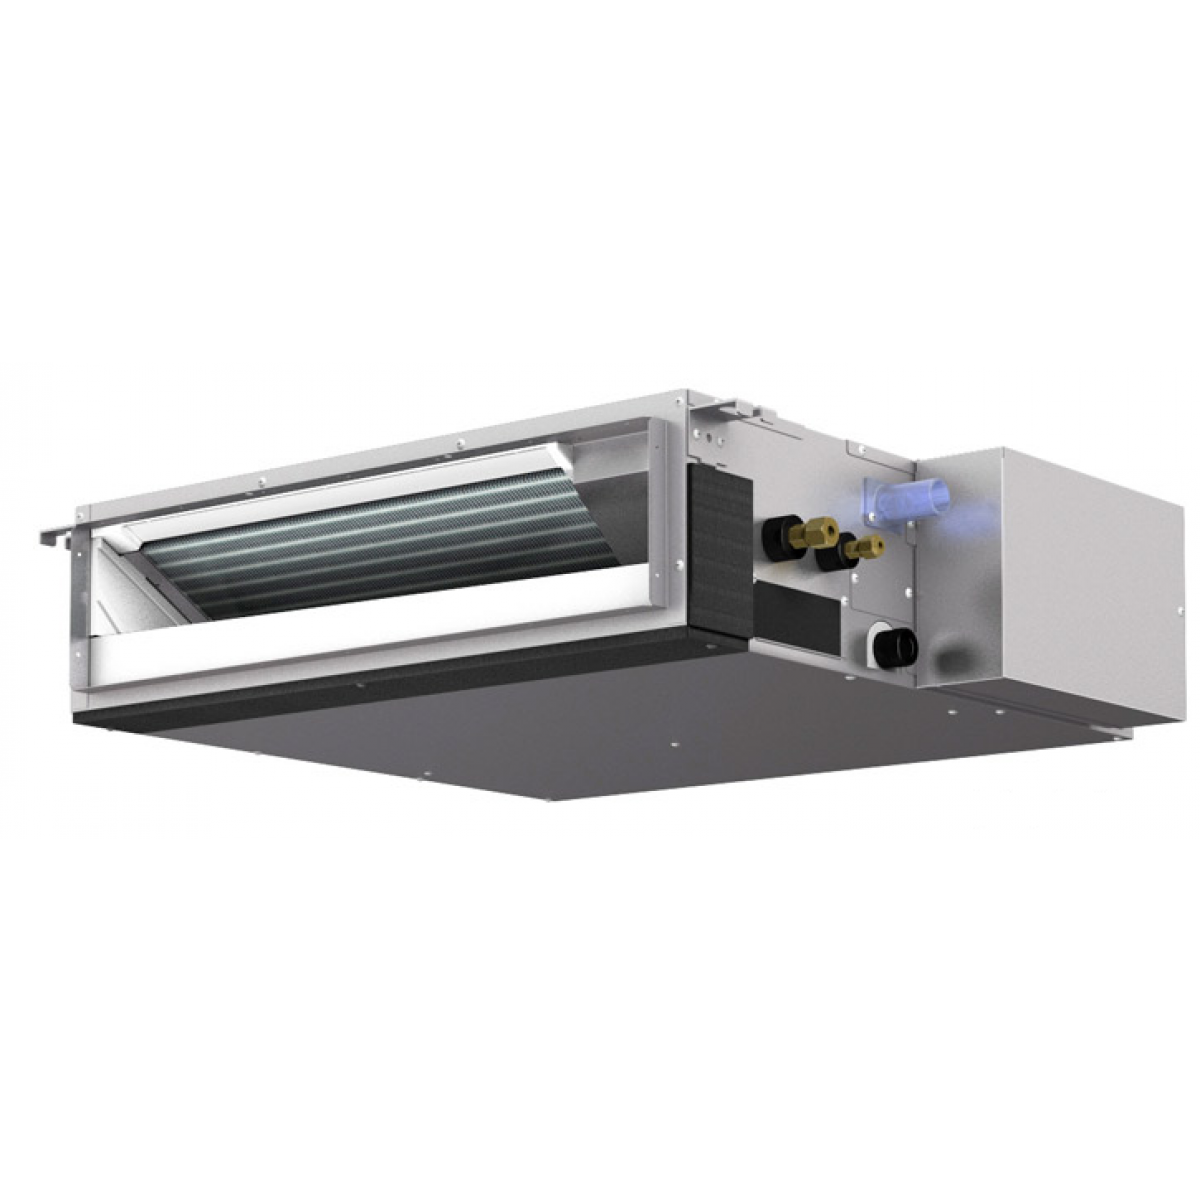 Duct Split Unit : Mxz b na split air conditioning and heating k btu